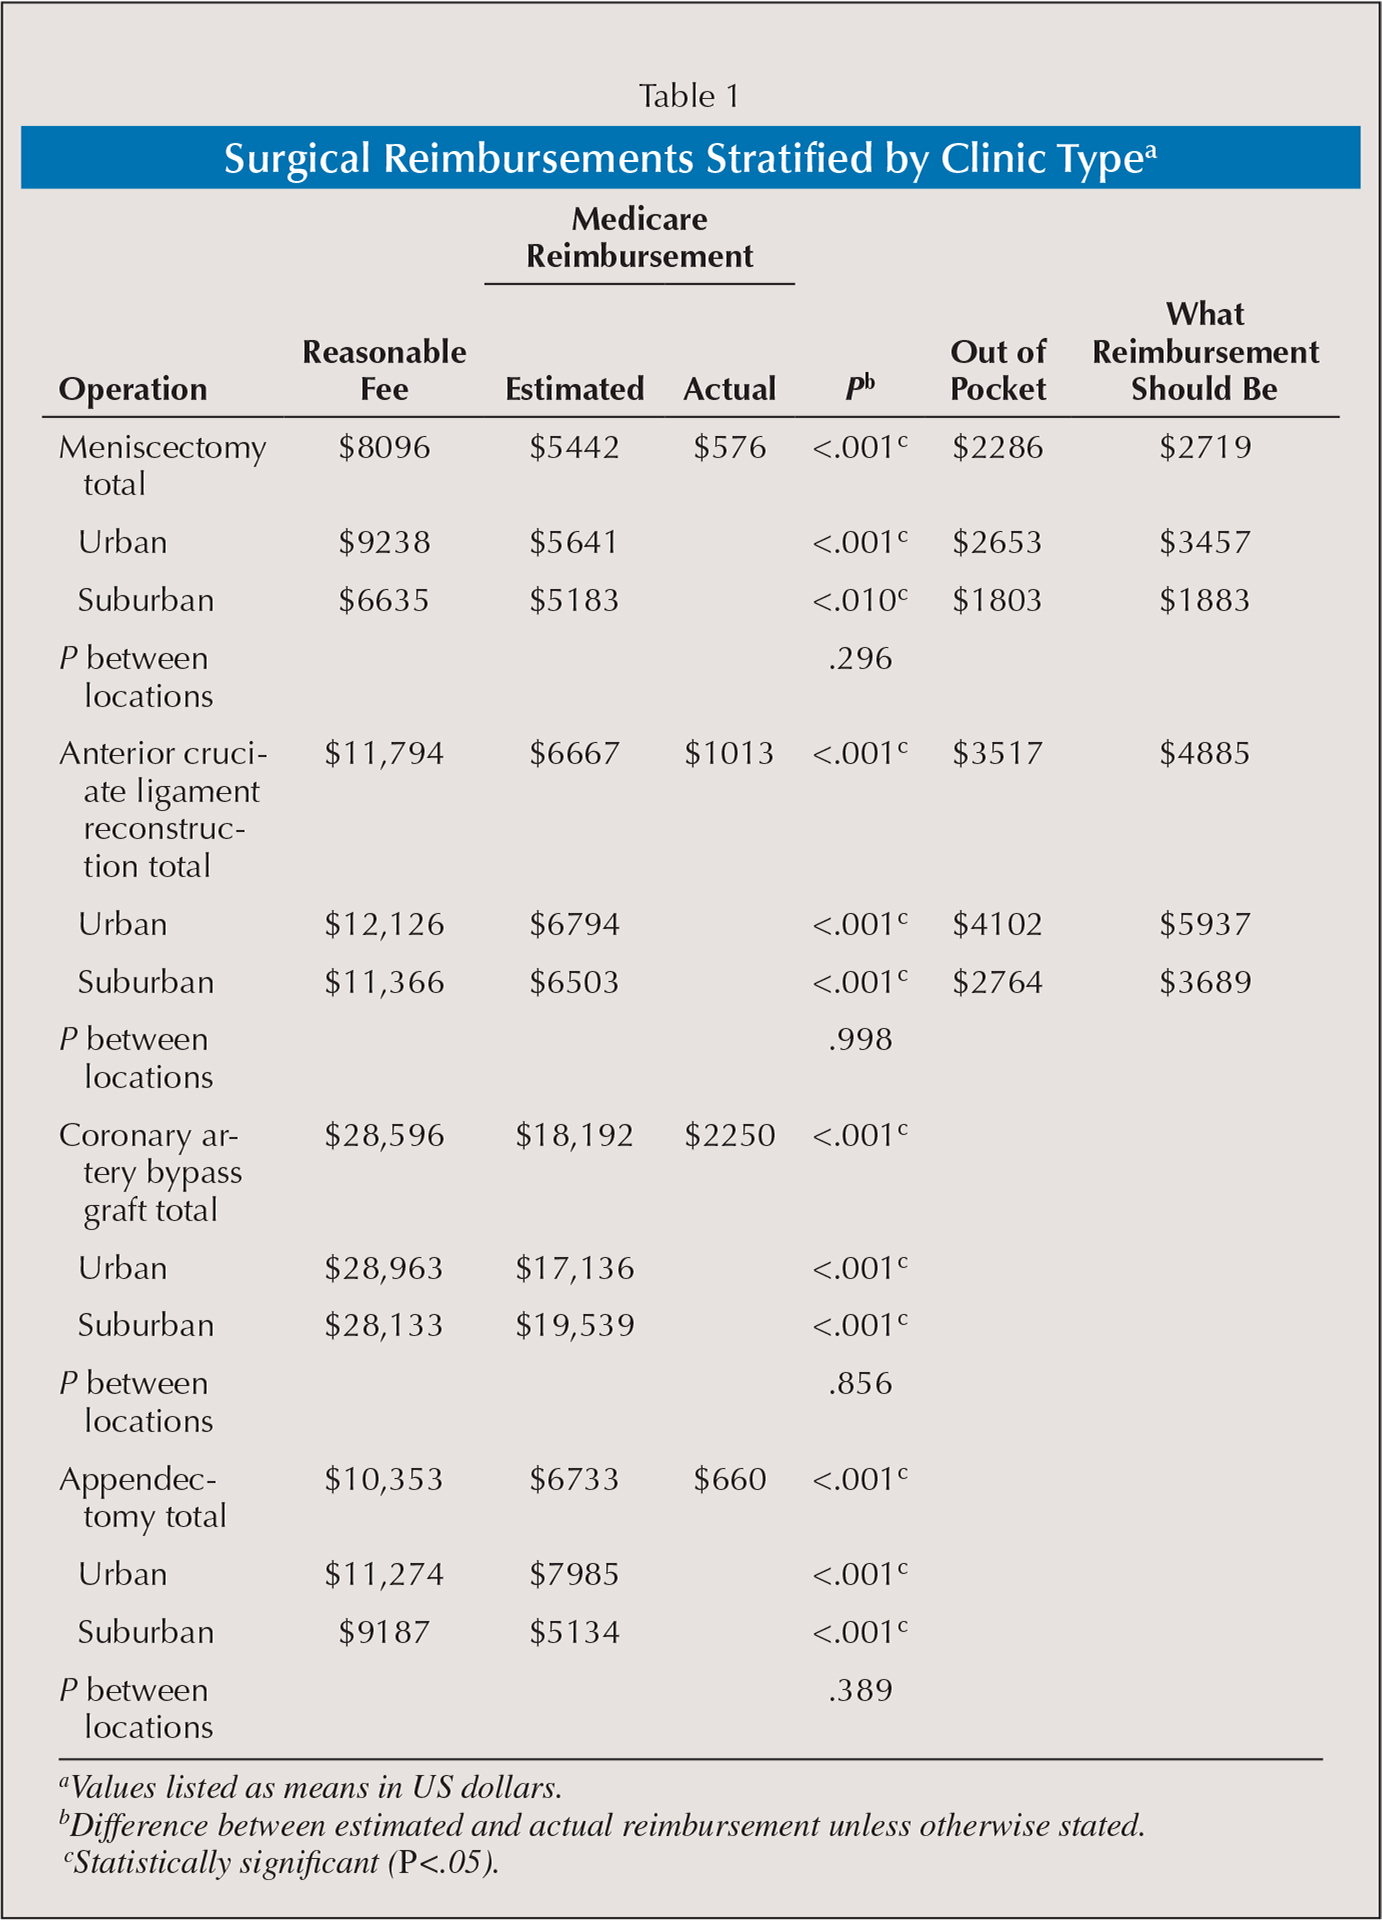 Surgical Reimbursements Stratified by Clinic Typea